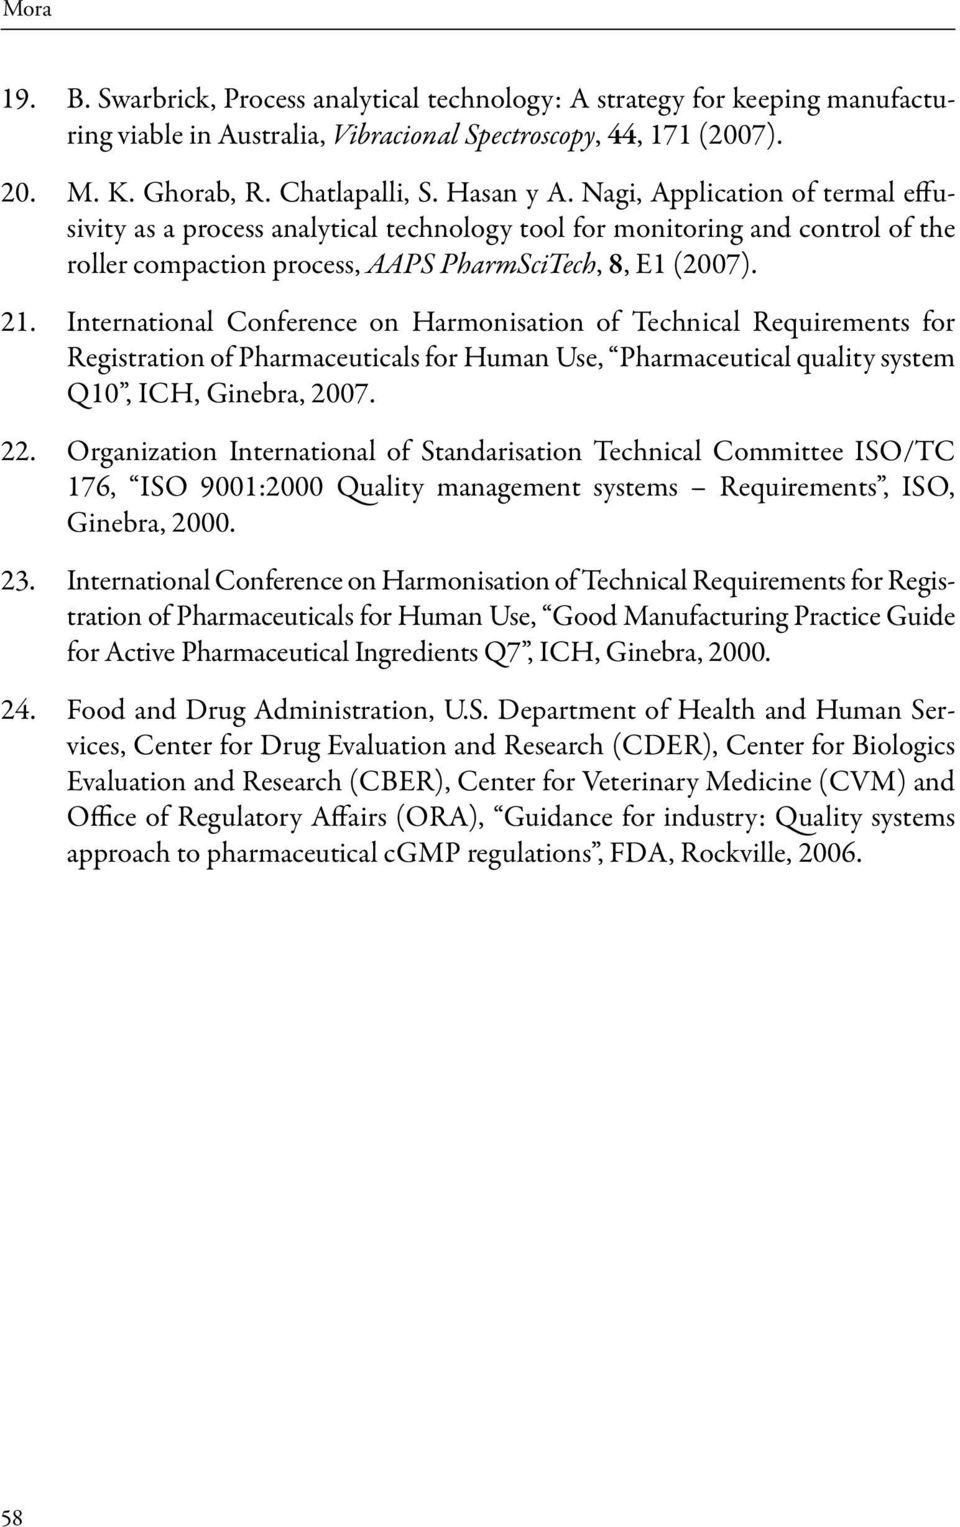 International Conference on Harmonisation of Technical Requirements for Registration of Pharmaceuticals for Human Use, Pharmaceutical quality system Q10, ICH, Ginebra, 2007.